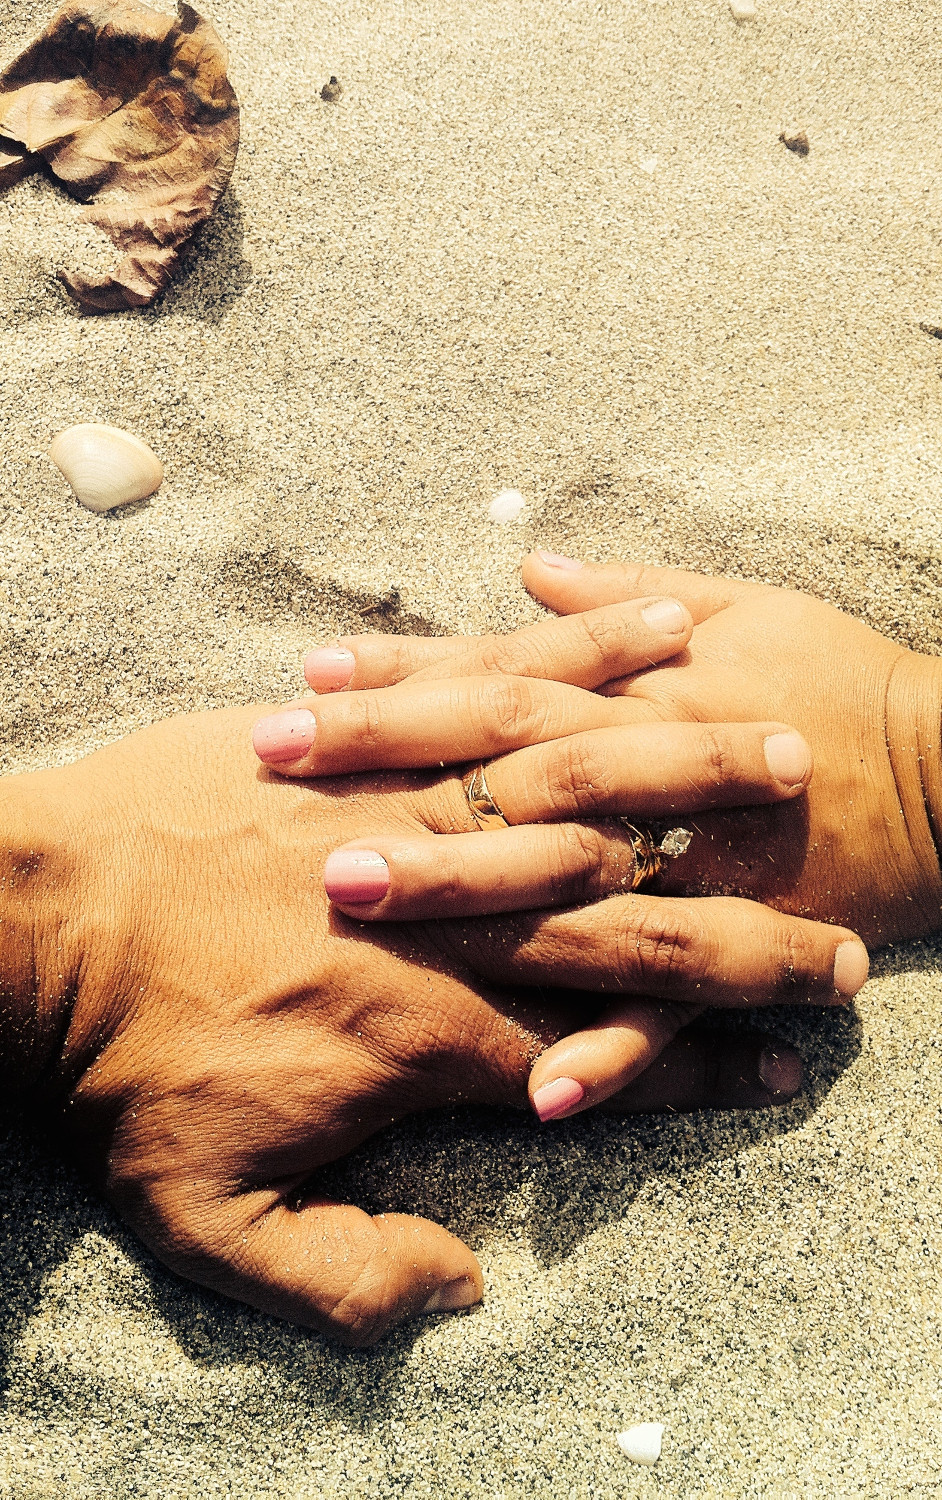 How Do Commitment and Presence Affect Your Relationship?